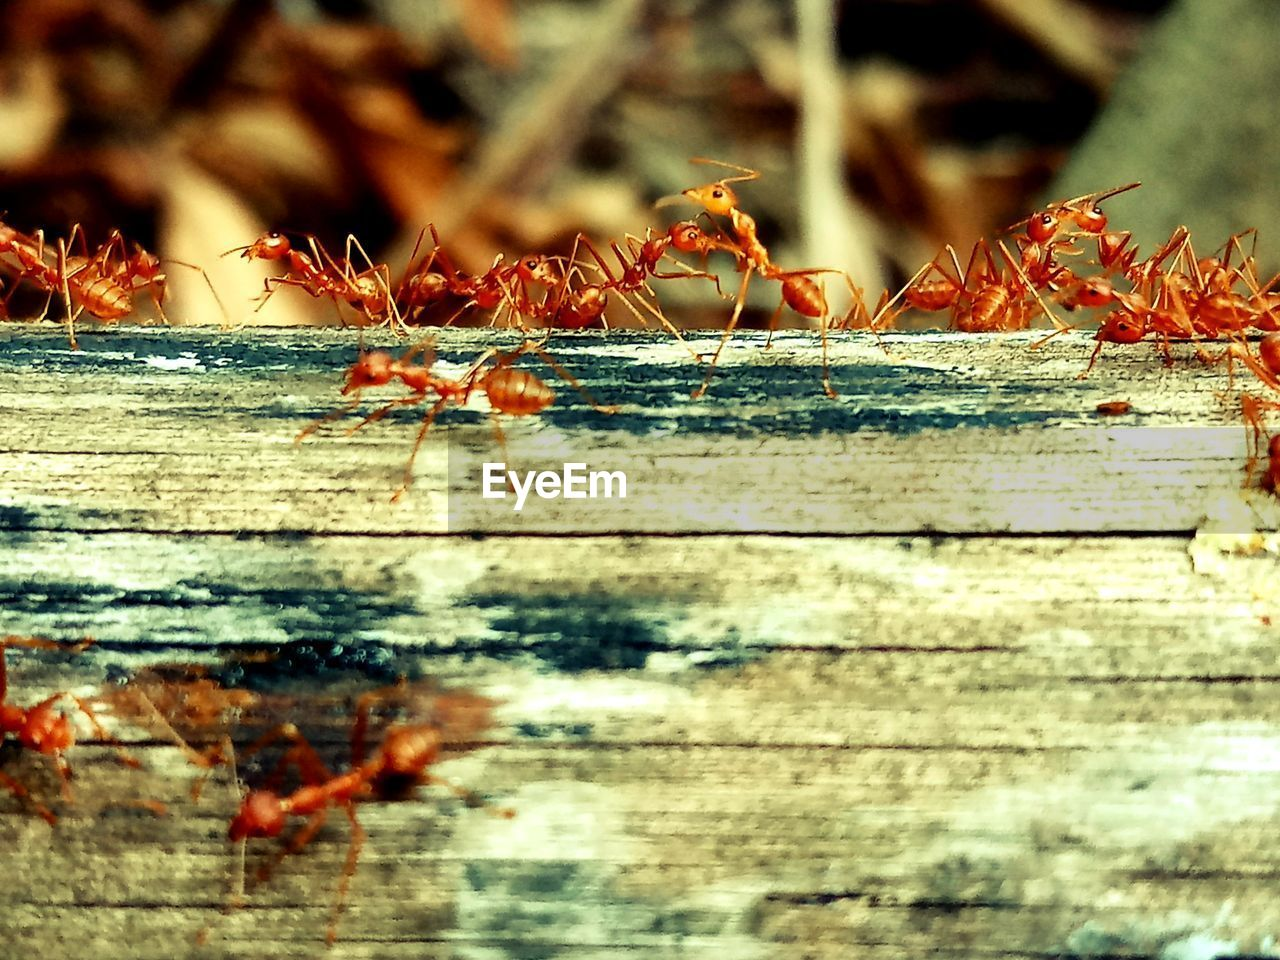 selective focus, close-up, wood - material, day, no people, invertebrate, nature, animals in the wild, insect, animal, outdoors, animal themes, focus on foreground, animal wildlife, group of animals, plant, tree, wood, sunlight, ant